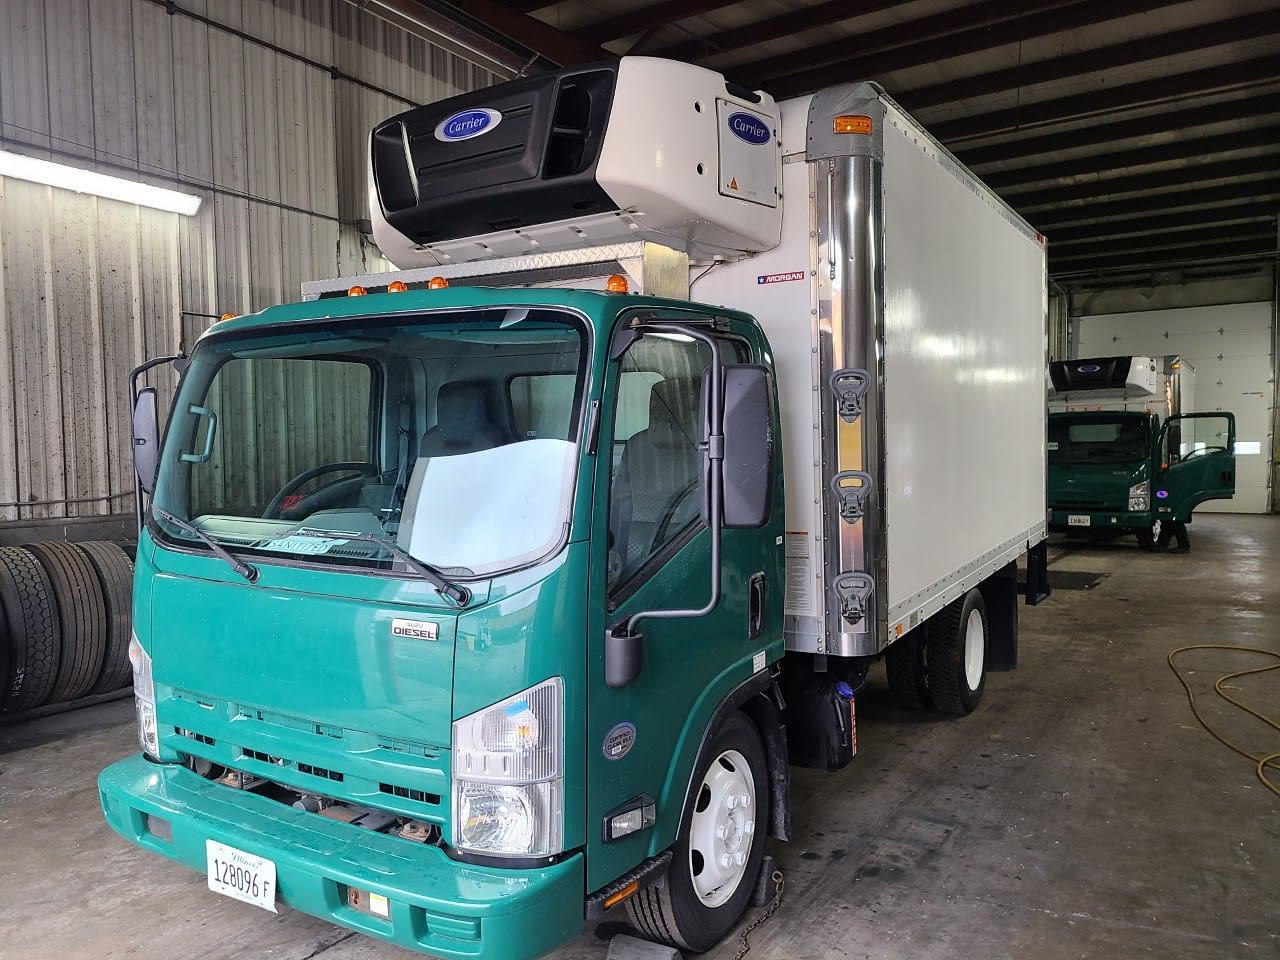 2015 Isuzu NPR-XD Regular Cab 4x2, Refrigerated Body #354181 - photo 1